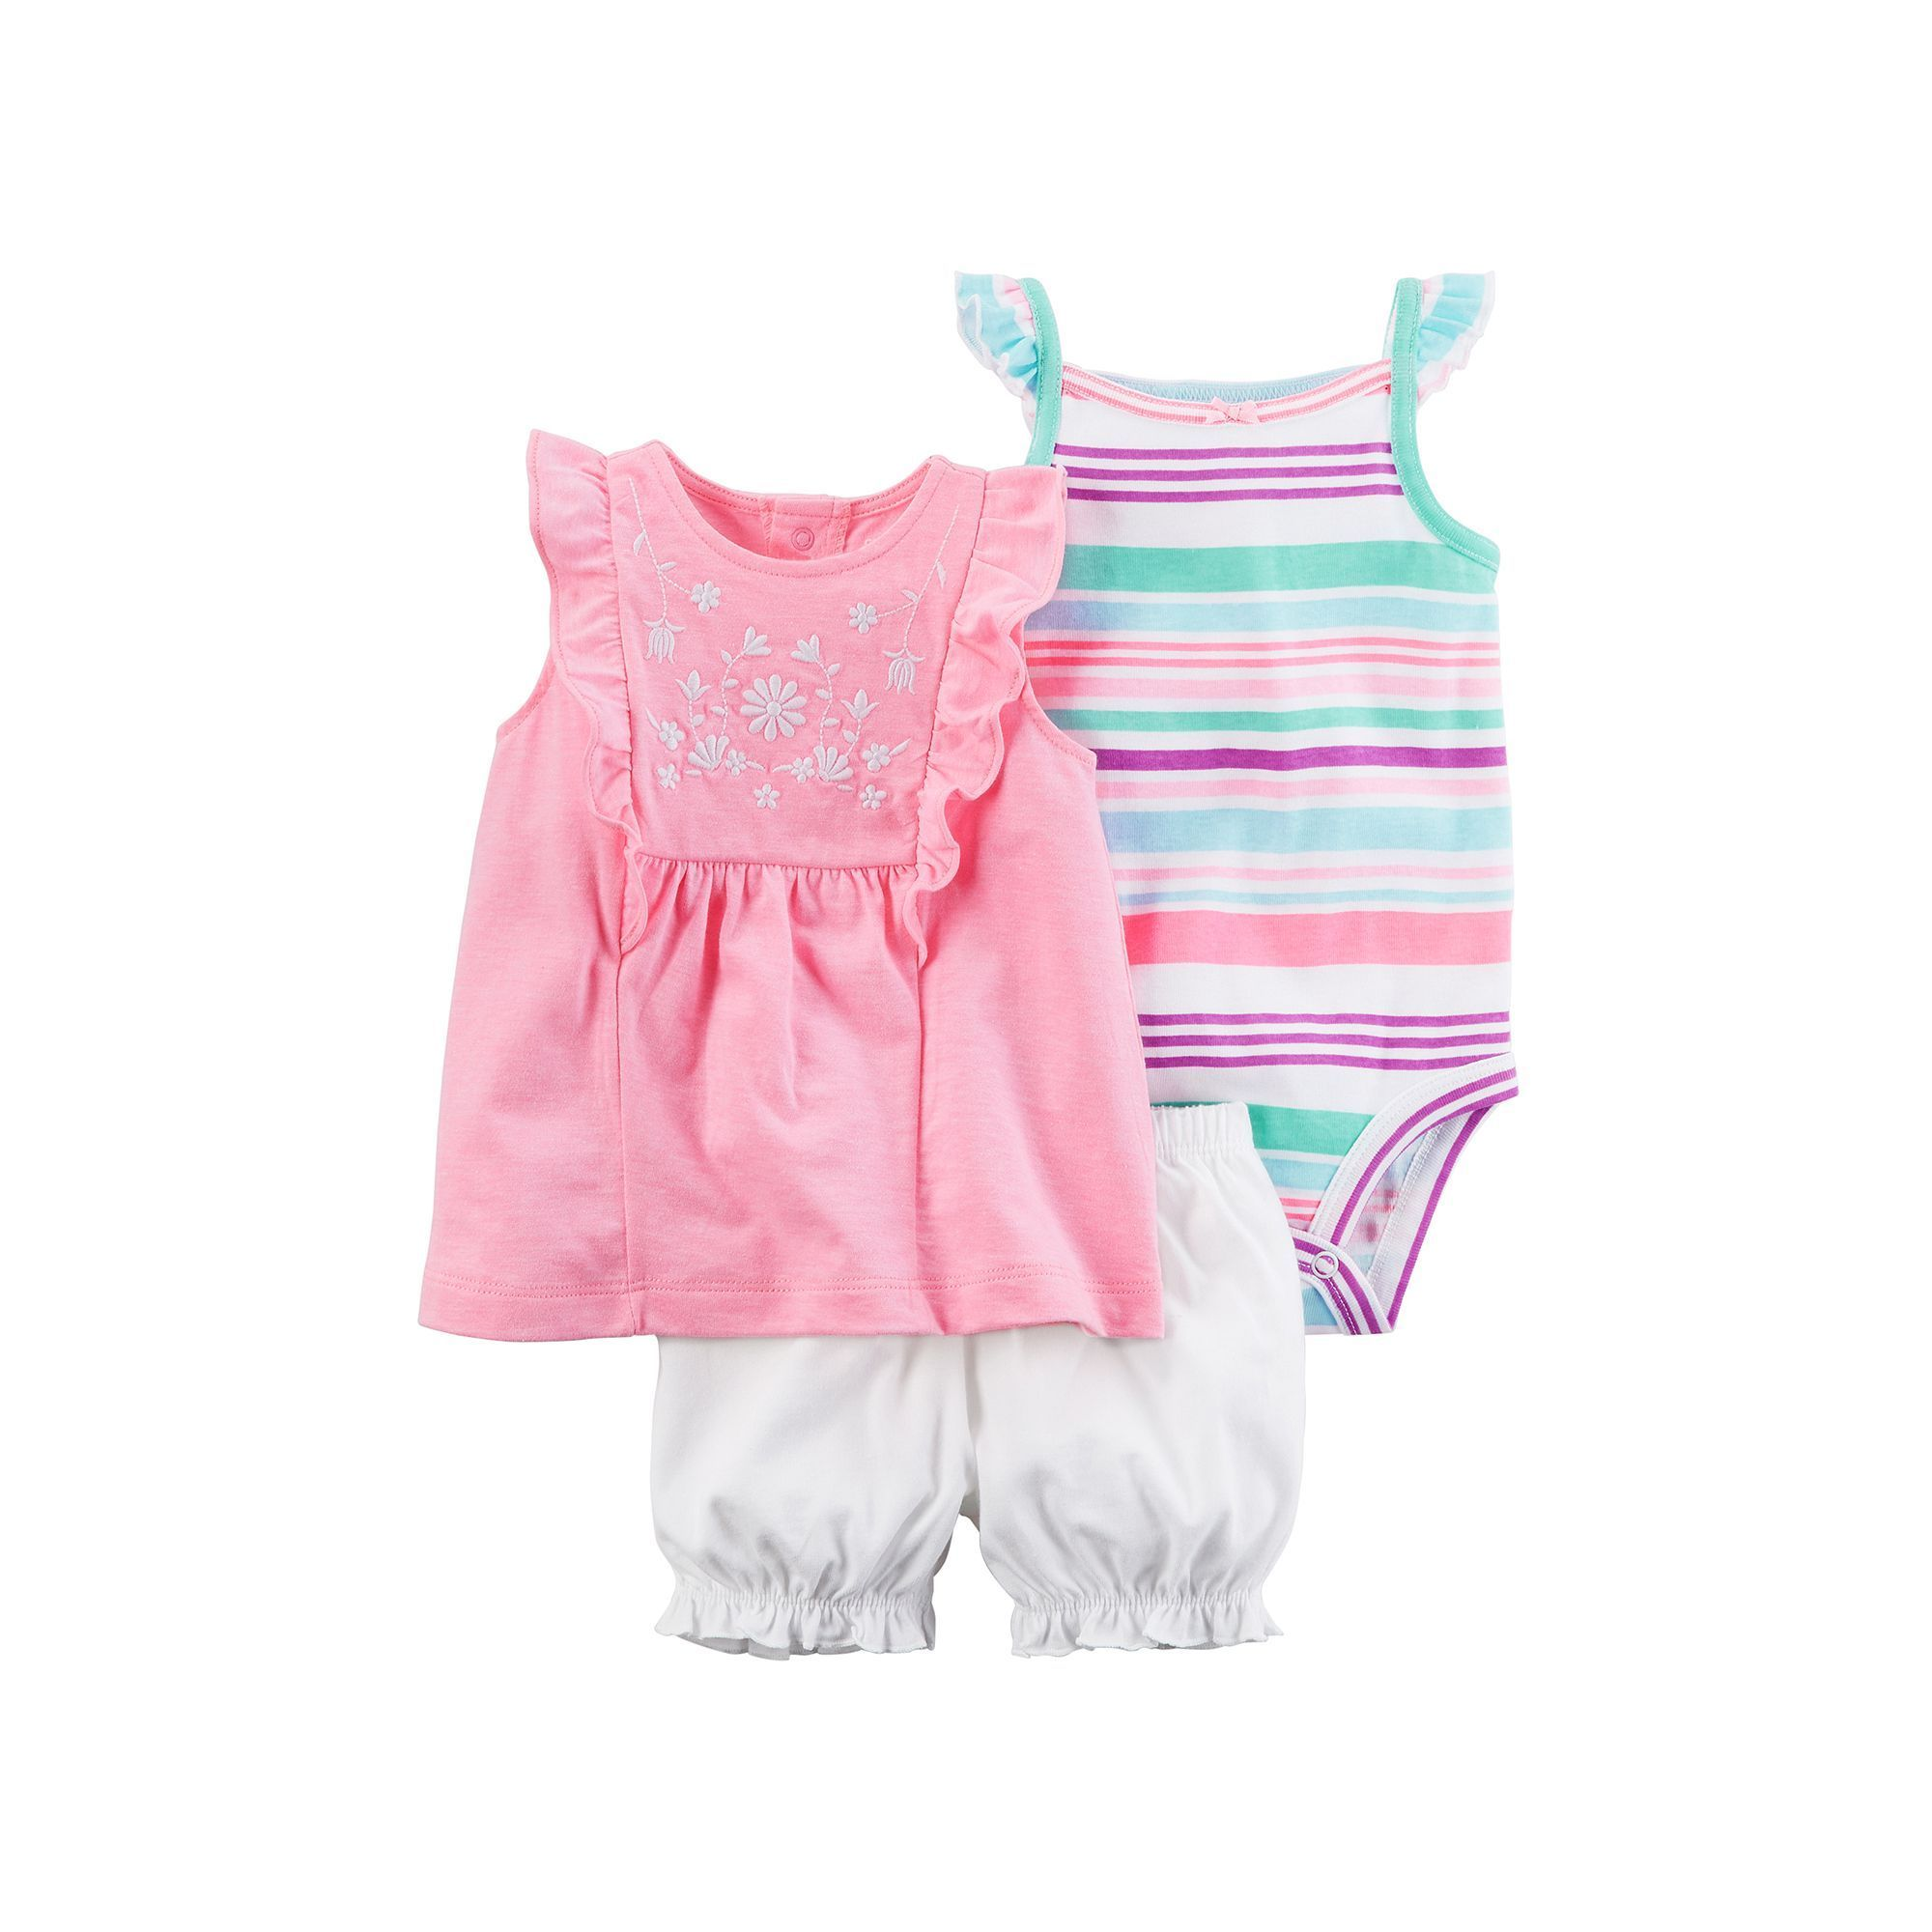 Carters Girls Size Newborn 3 months Pink Blue Embroidered Romper New